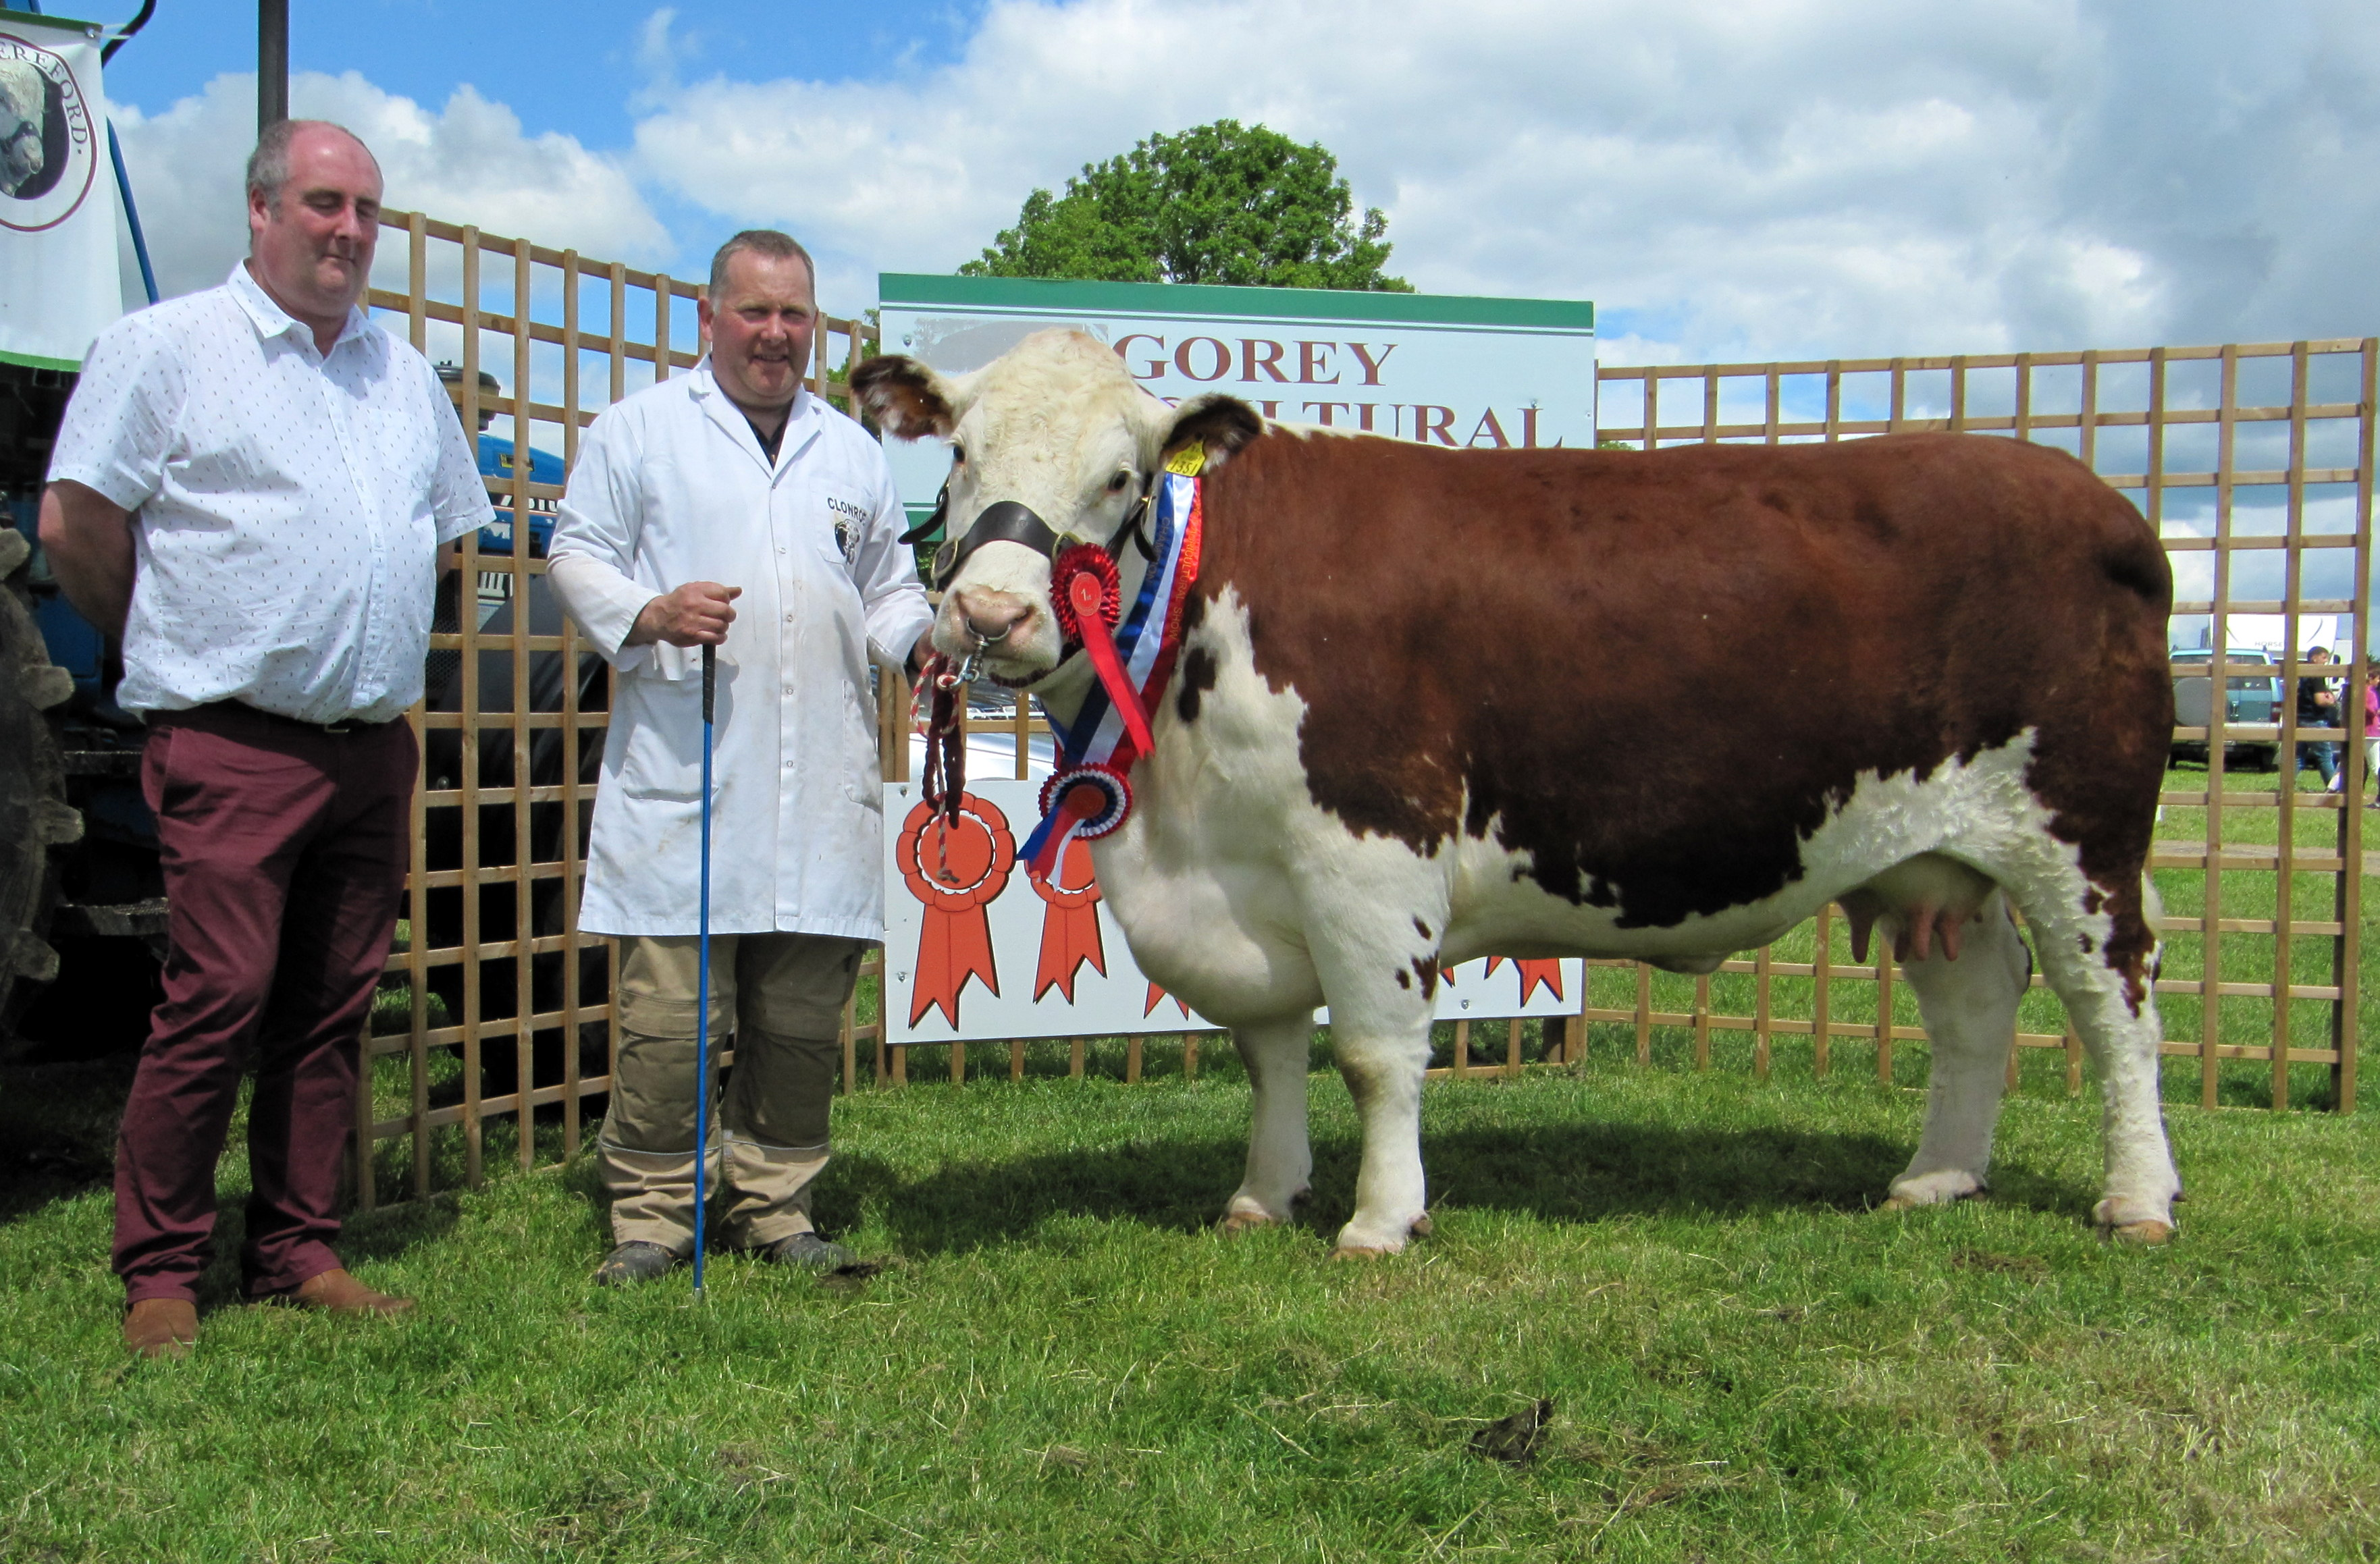 Gorey S 160th Annual Agricultural Show Irish Hereford Breed Society Ltd